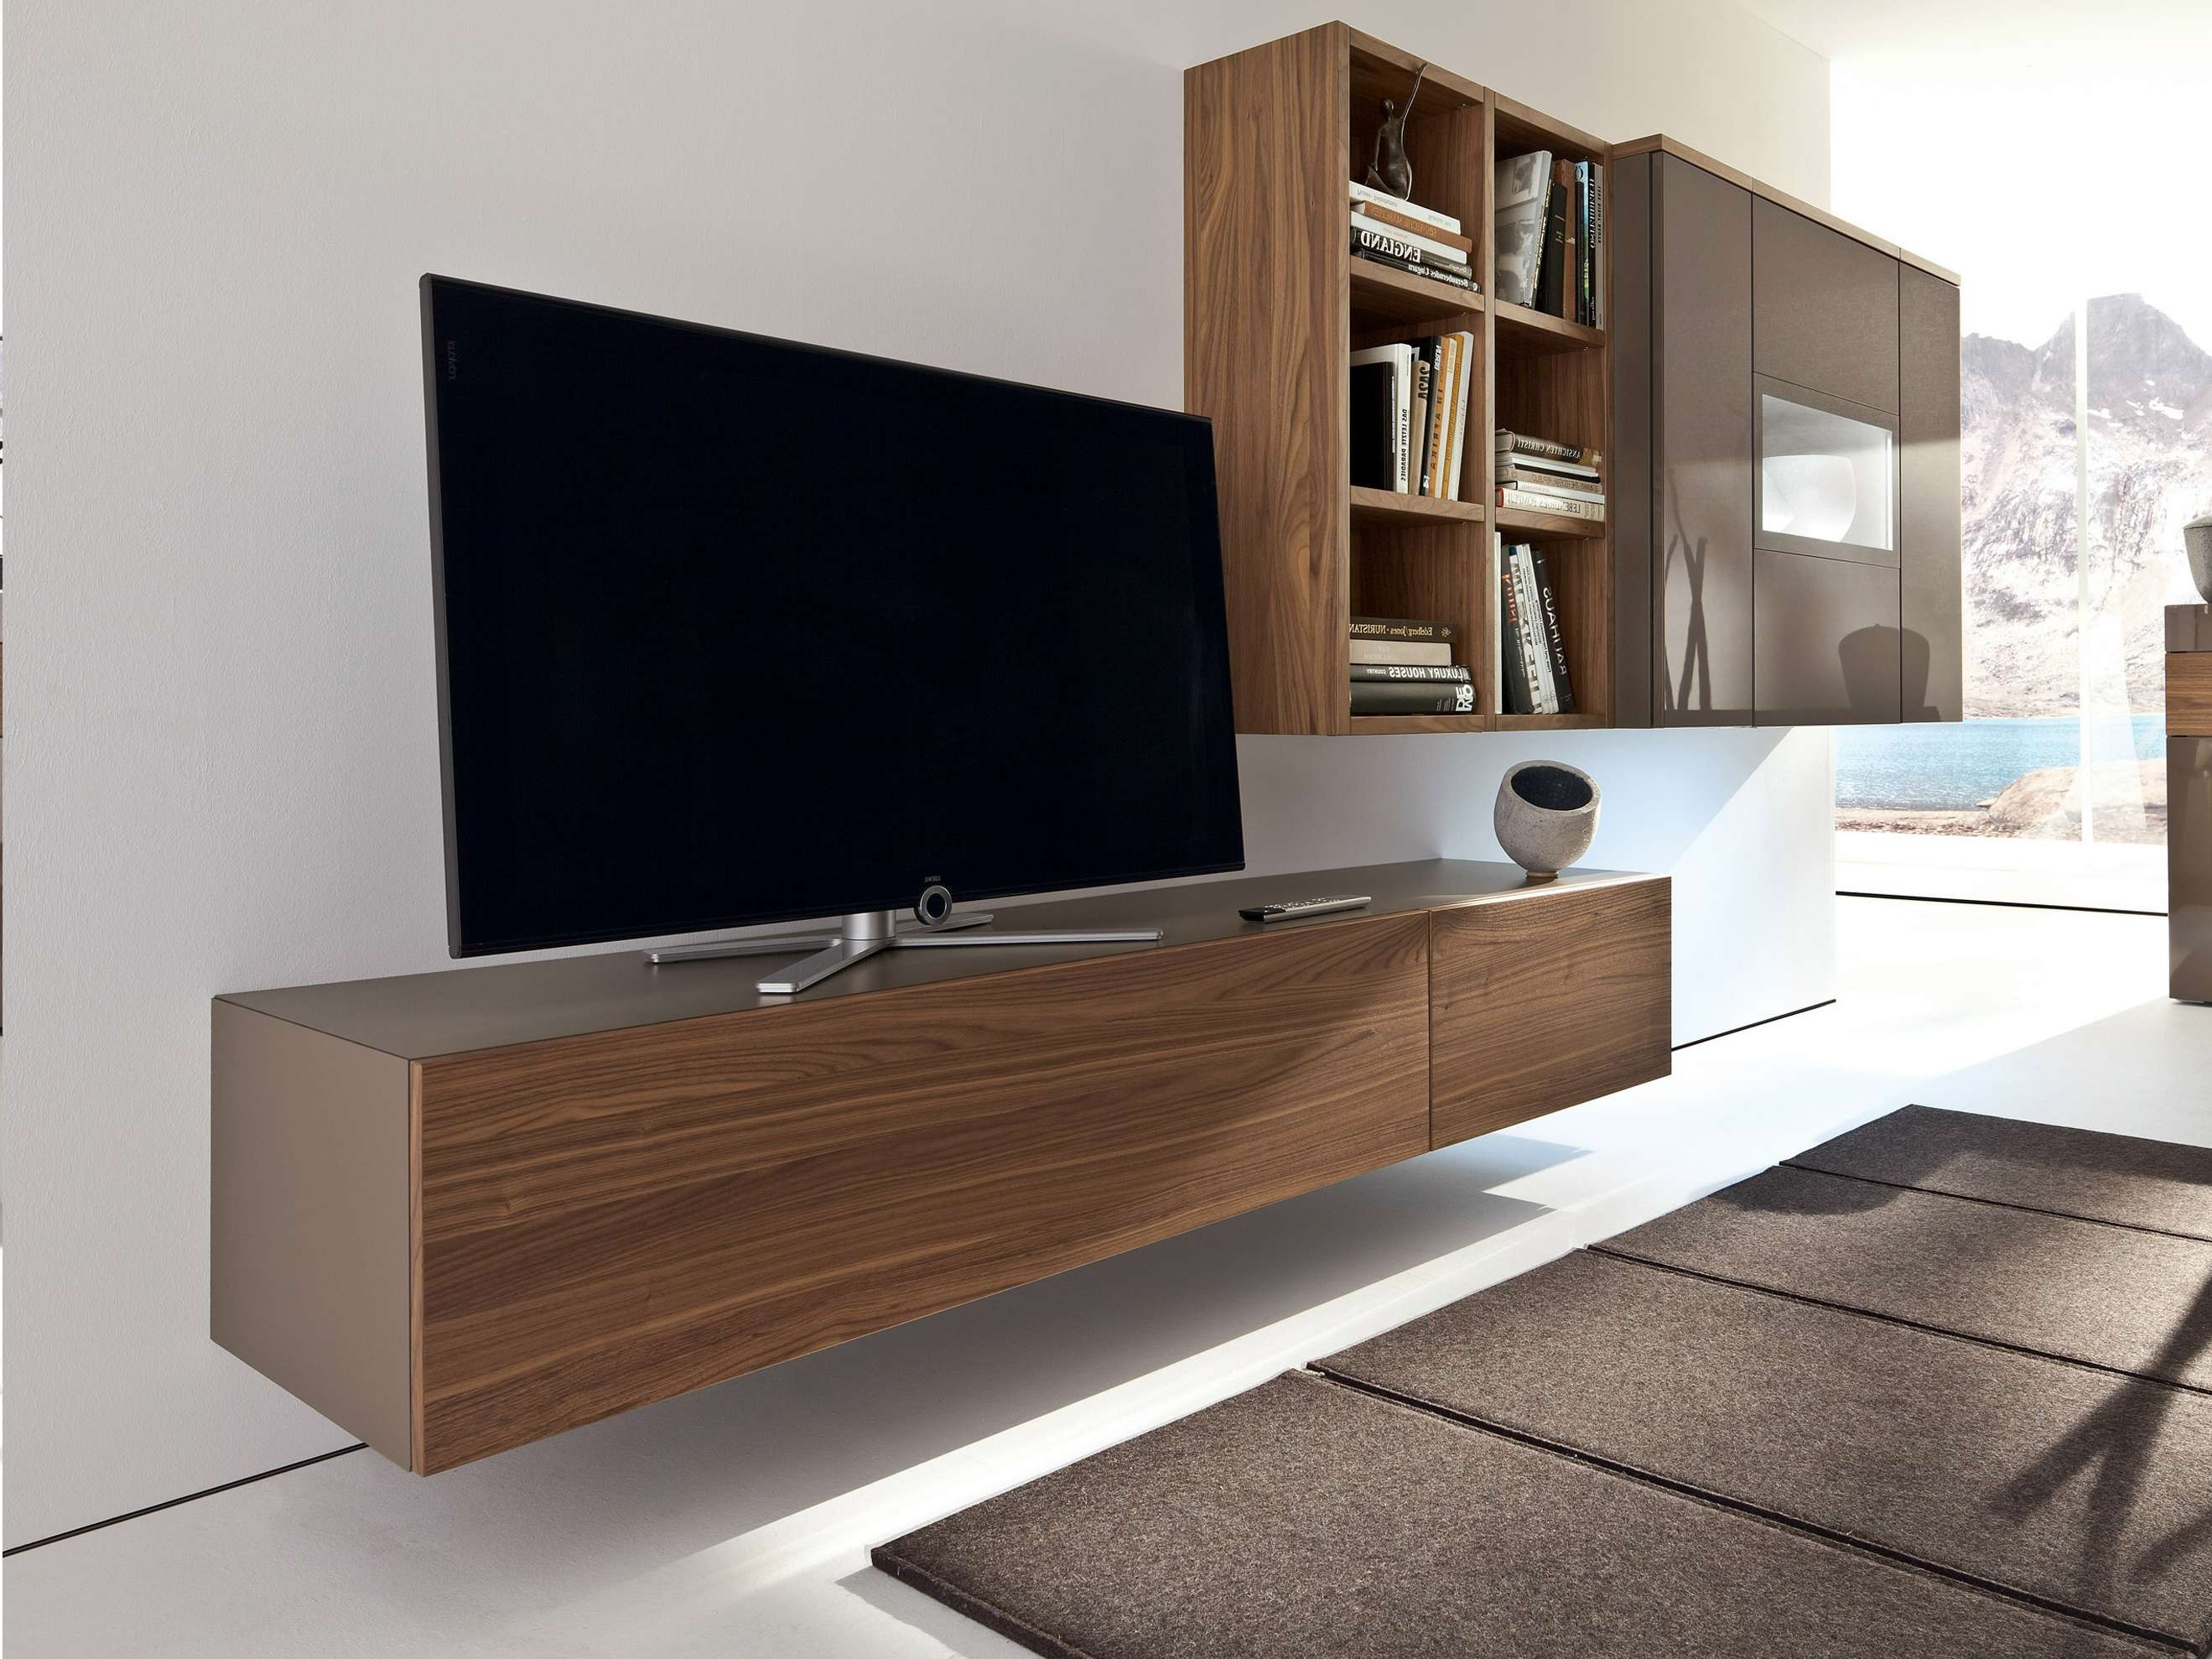 Bedroom : Tv Stand Unit Led Tv Table Wall Cabinets For Living Room Pertaining To Wall Mounted Tv Cabinets With Doors (View 3 of 20)